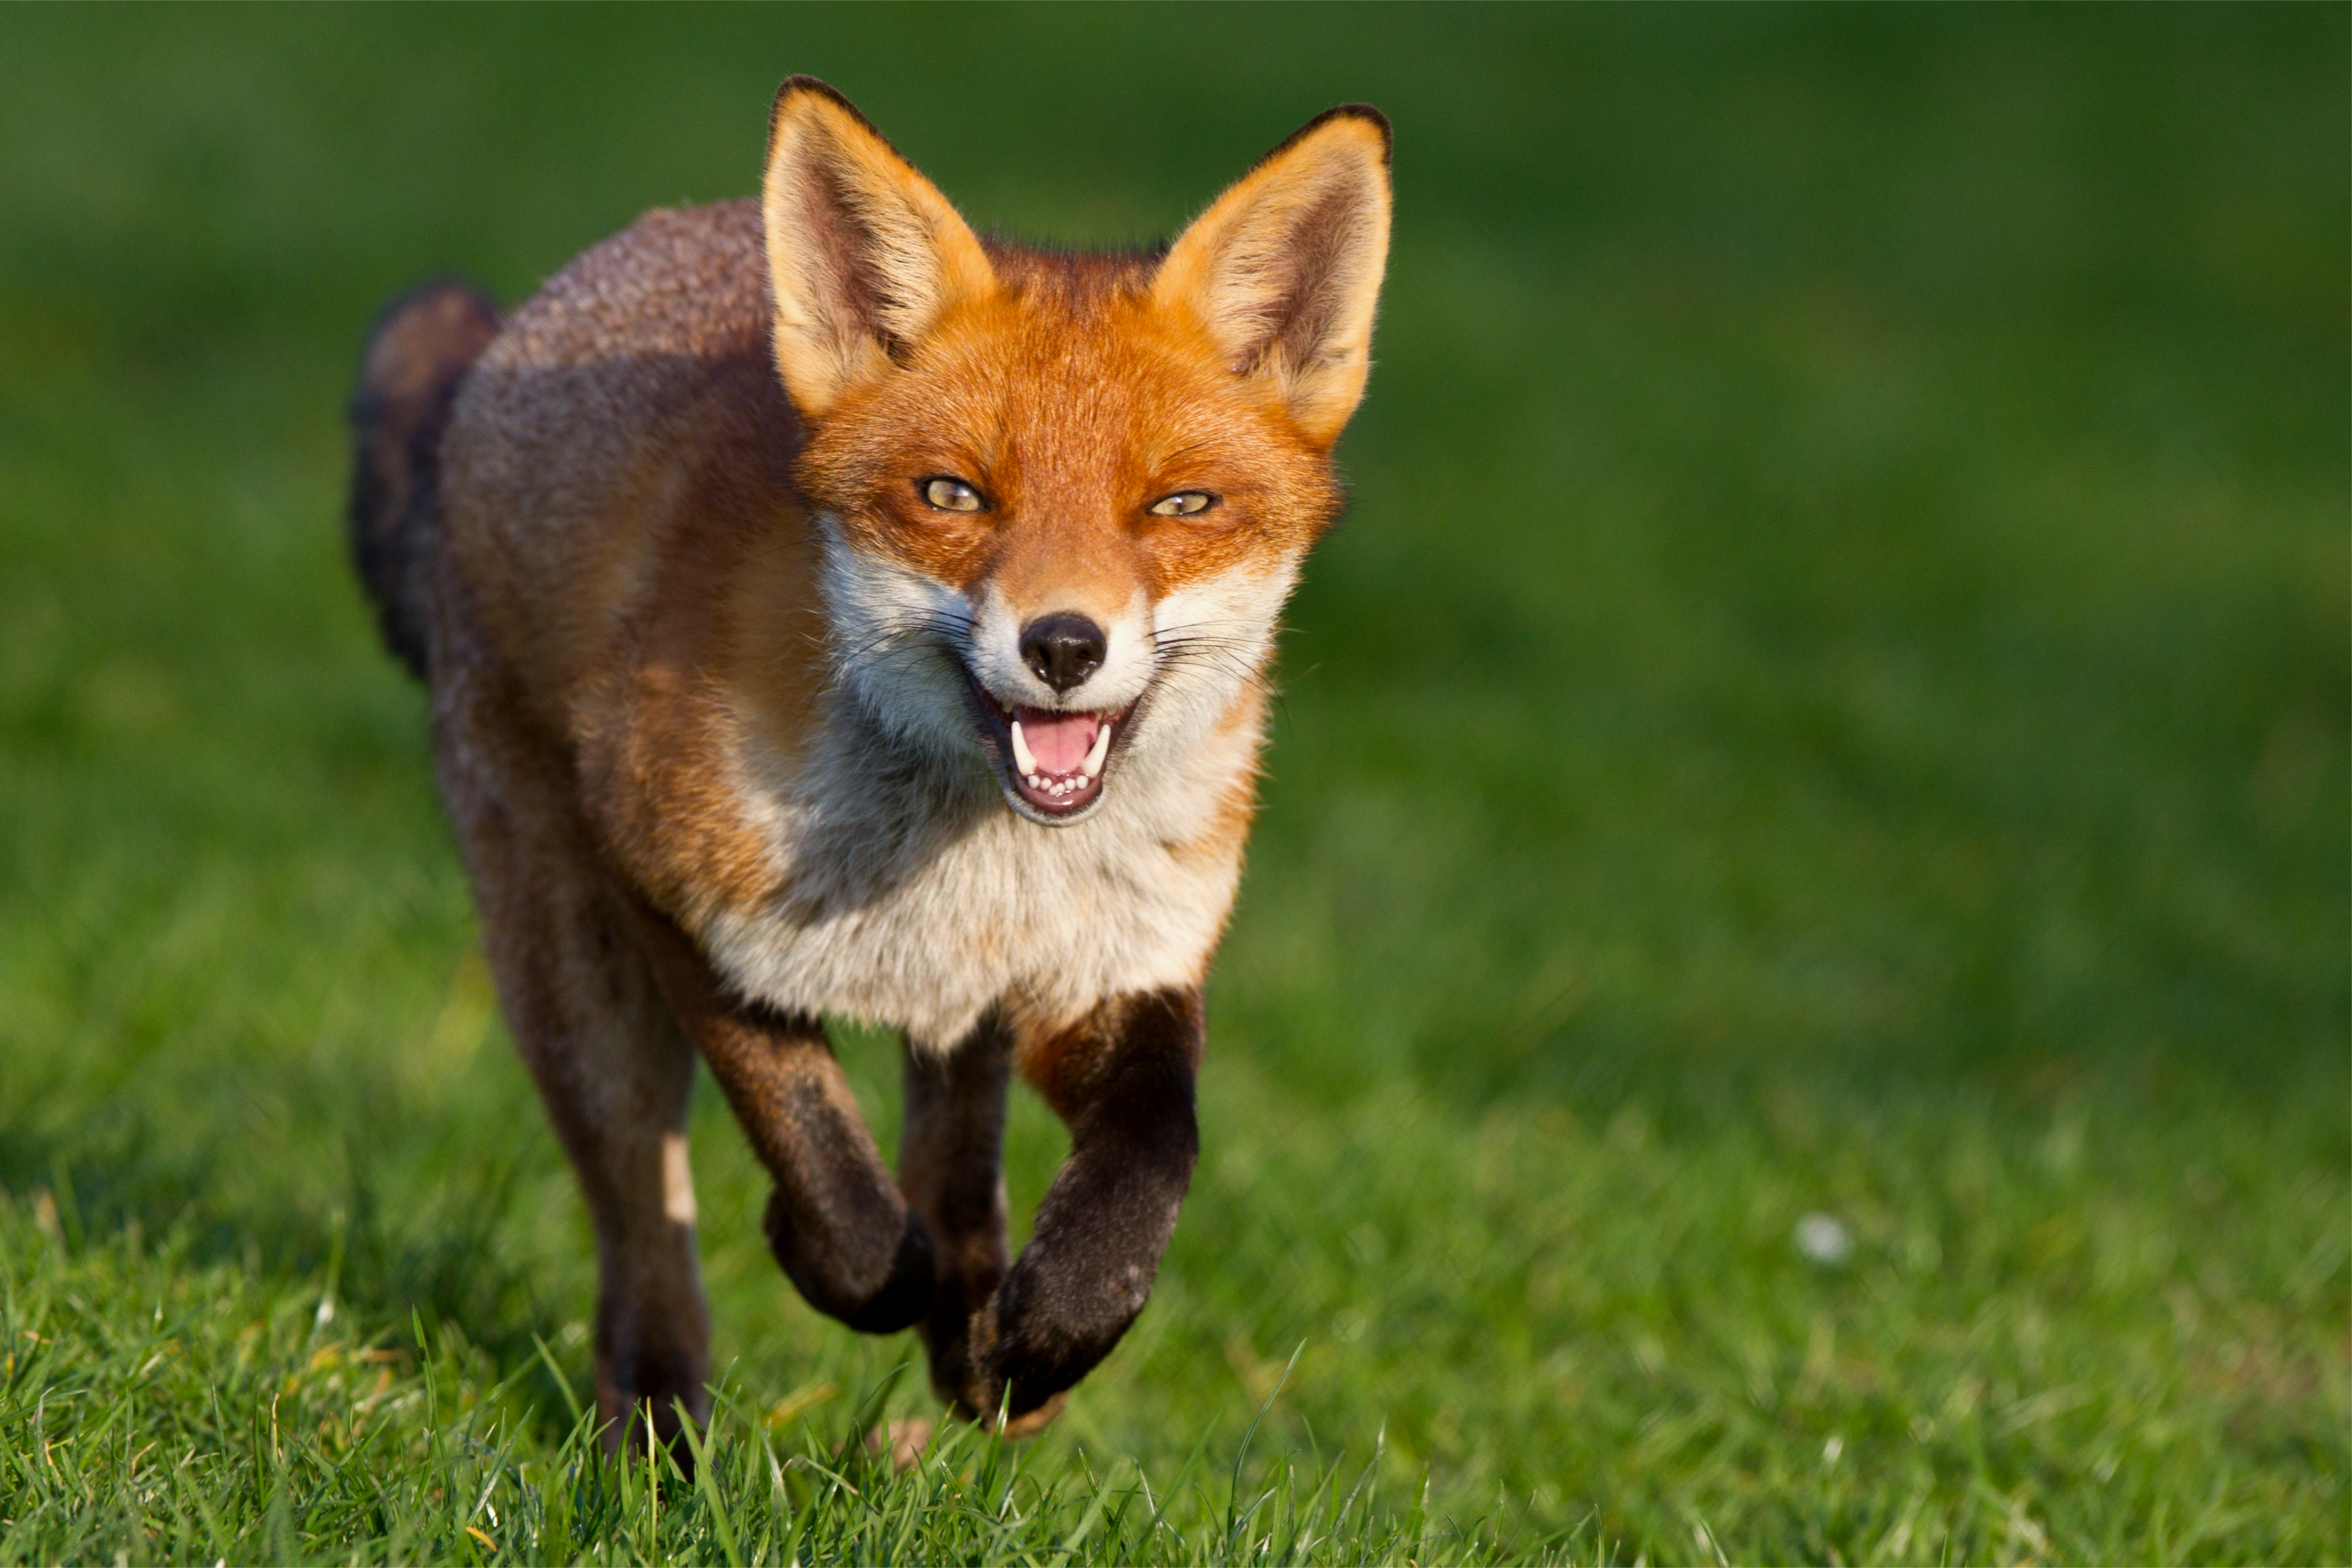 65386 download wallpaper Animals, Fox, Grass, Stroll, Run Away, Run screensavers and pictures for free